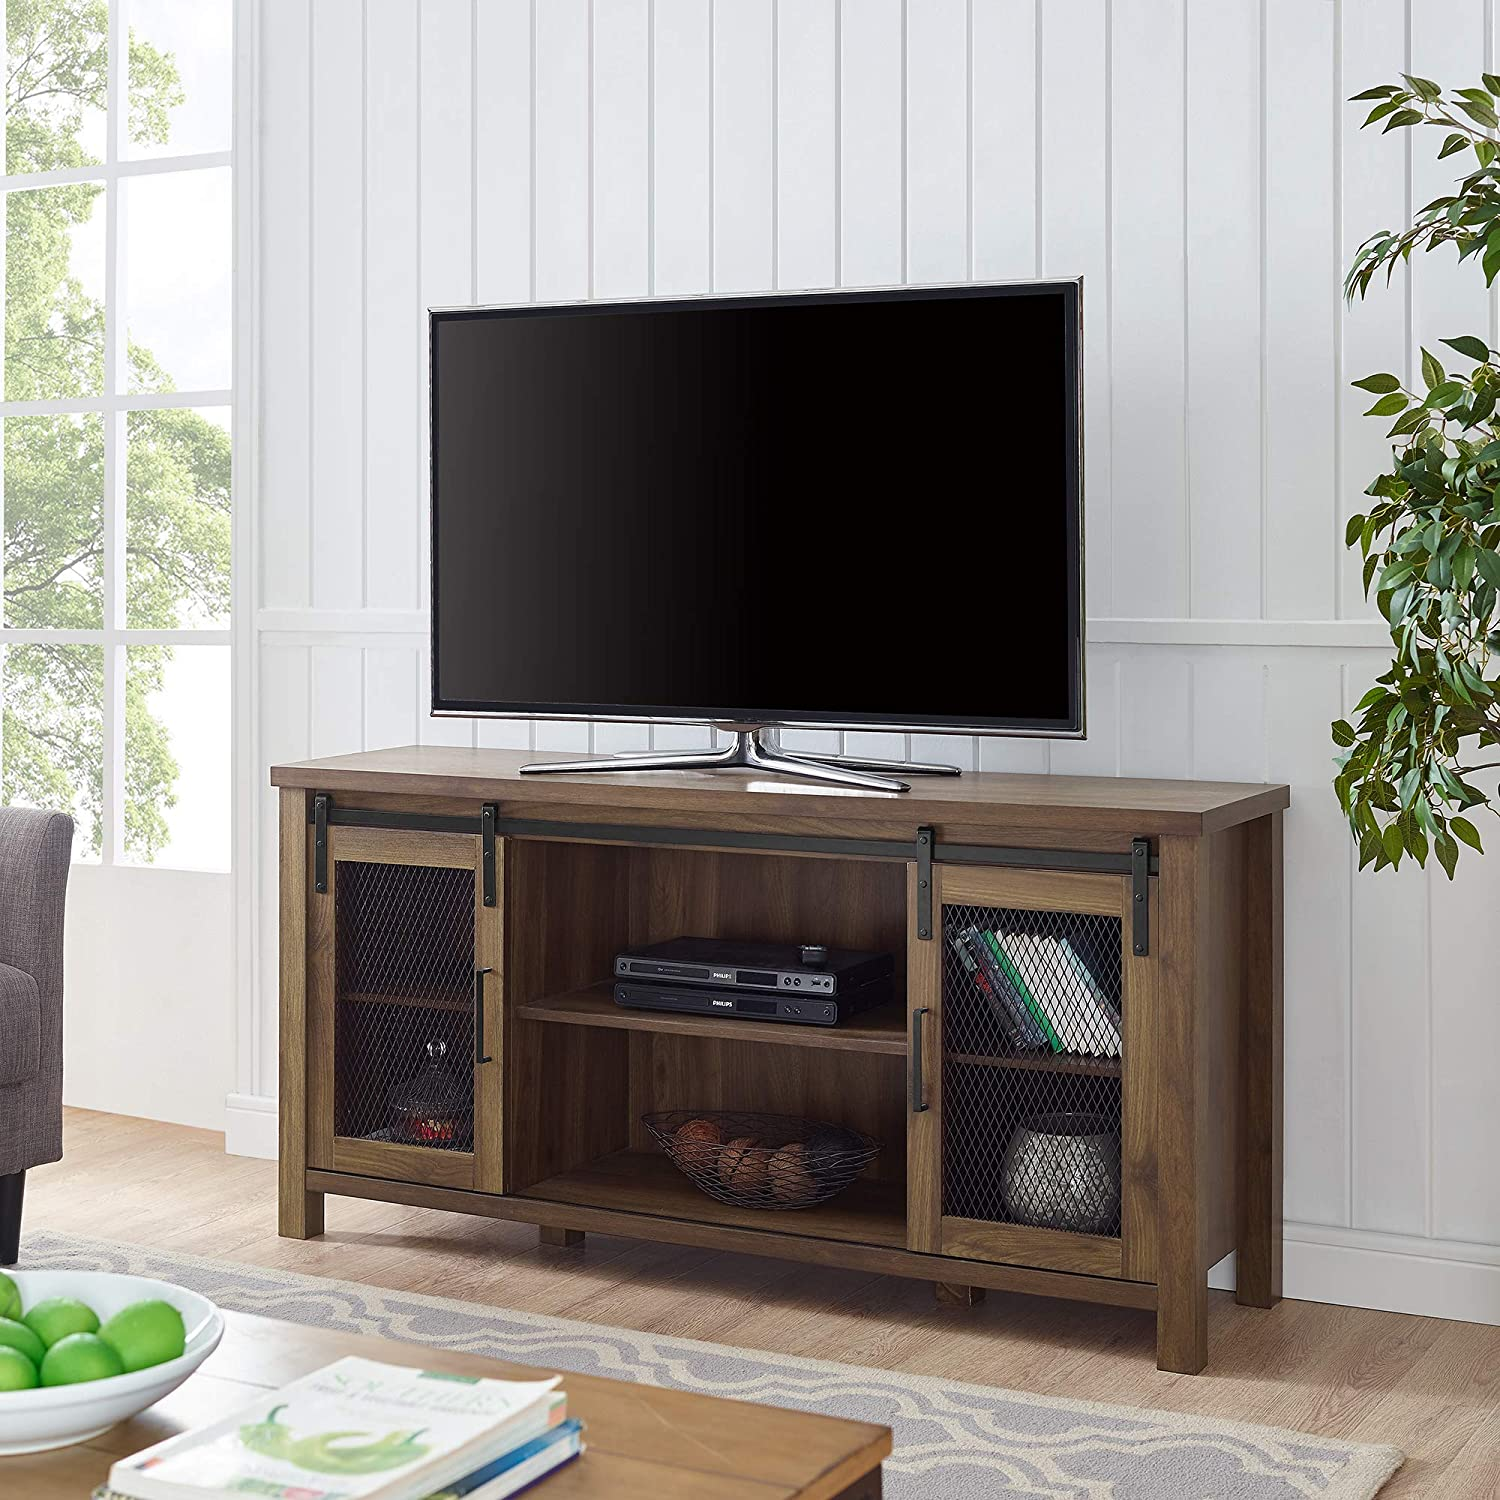 WE Furniture TV Stand 58 Dark Walnut